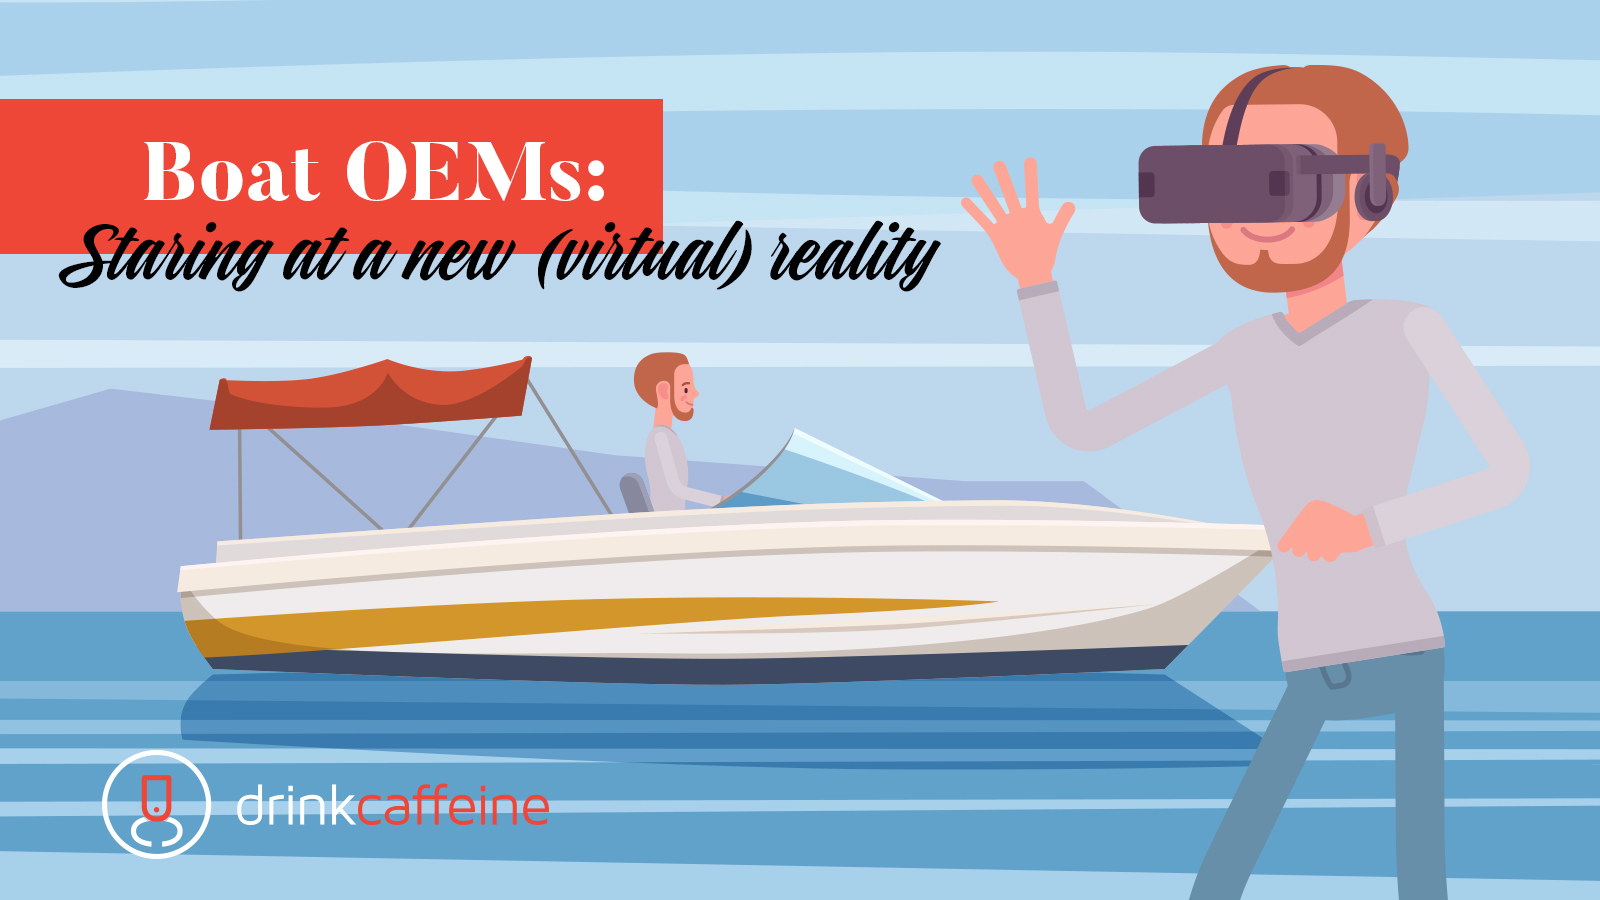 Boat OEMs: Starting at a new (virtual) reality blog image